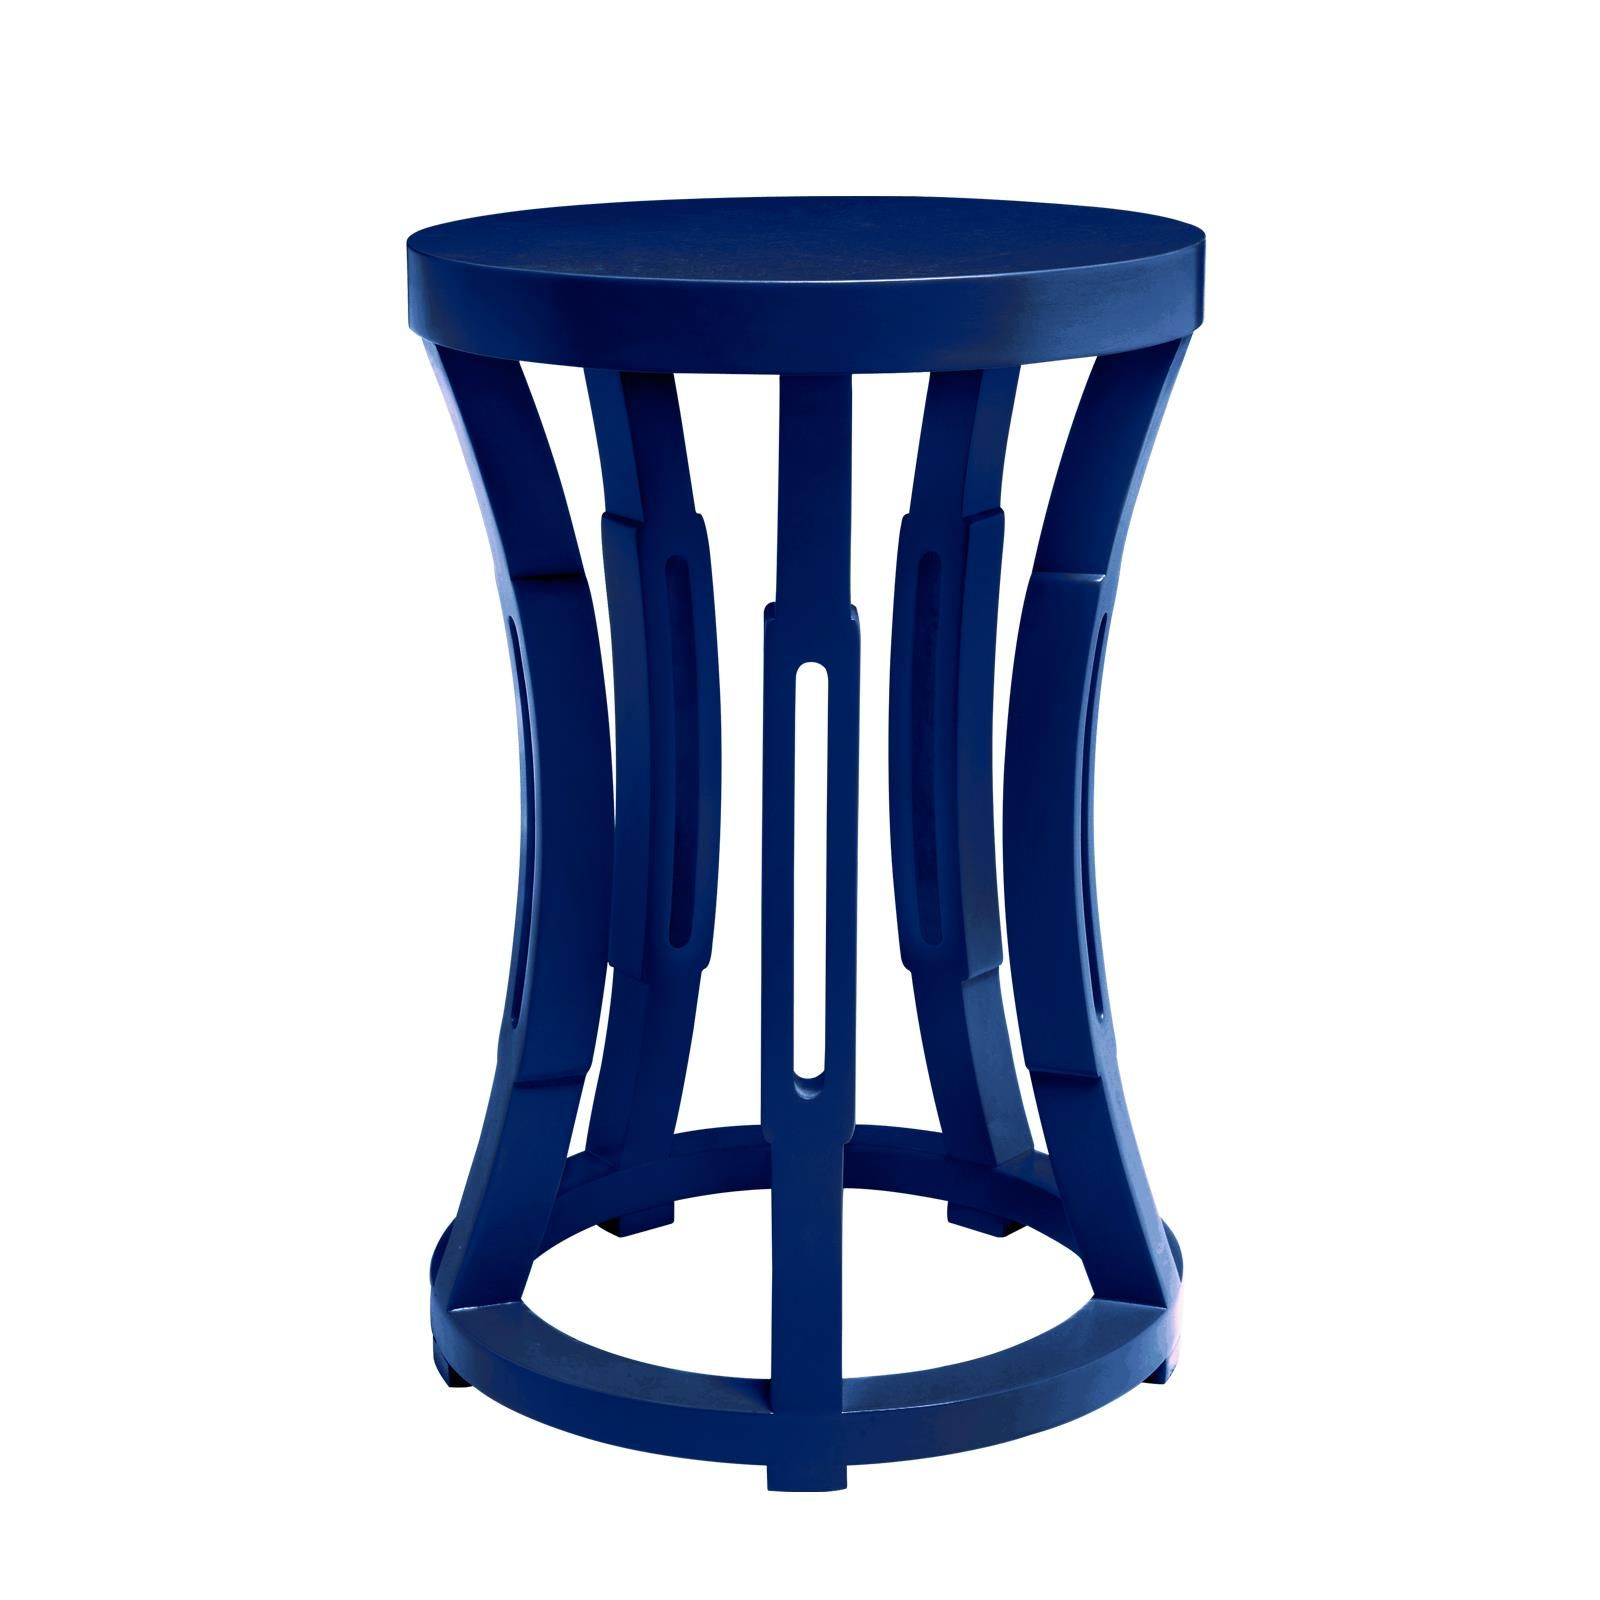 Superieur Hourglass Stool/Side Table, Navy Blue   Bungalow 5